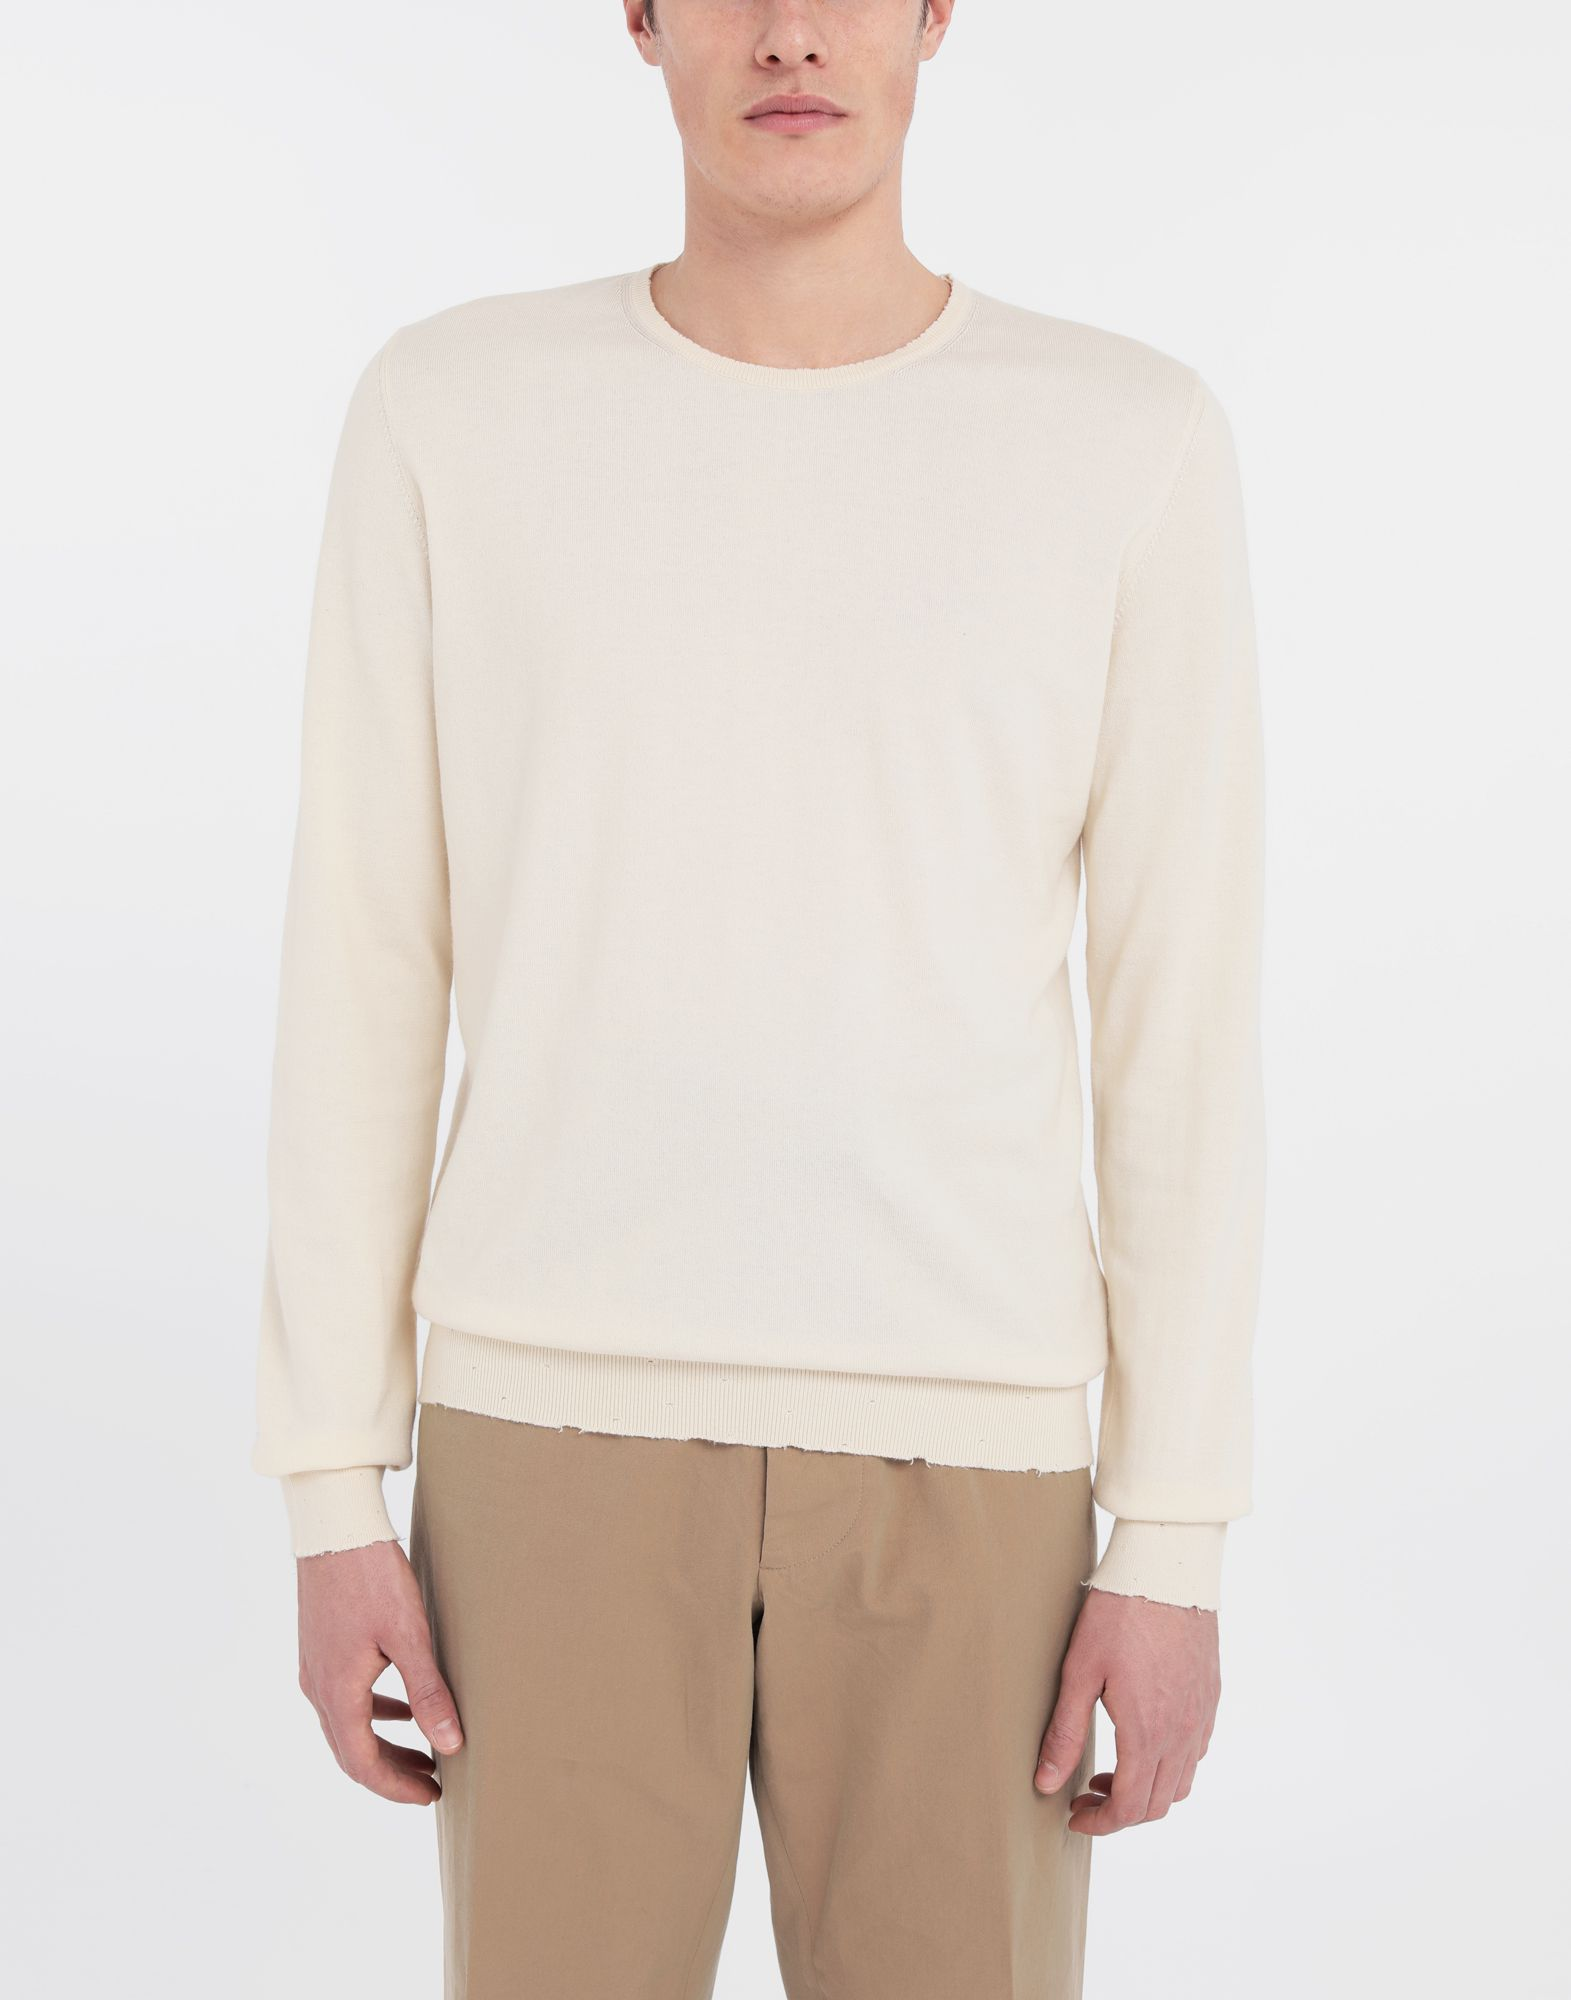 MAISON MARGIELA Destroyed knit pullover Crewneck sweater Man r